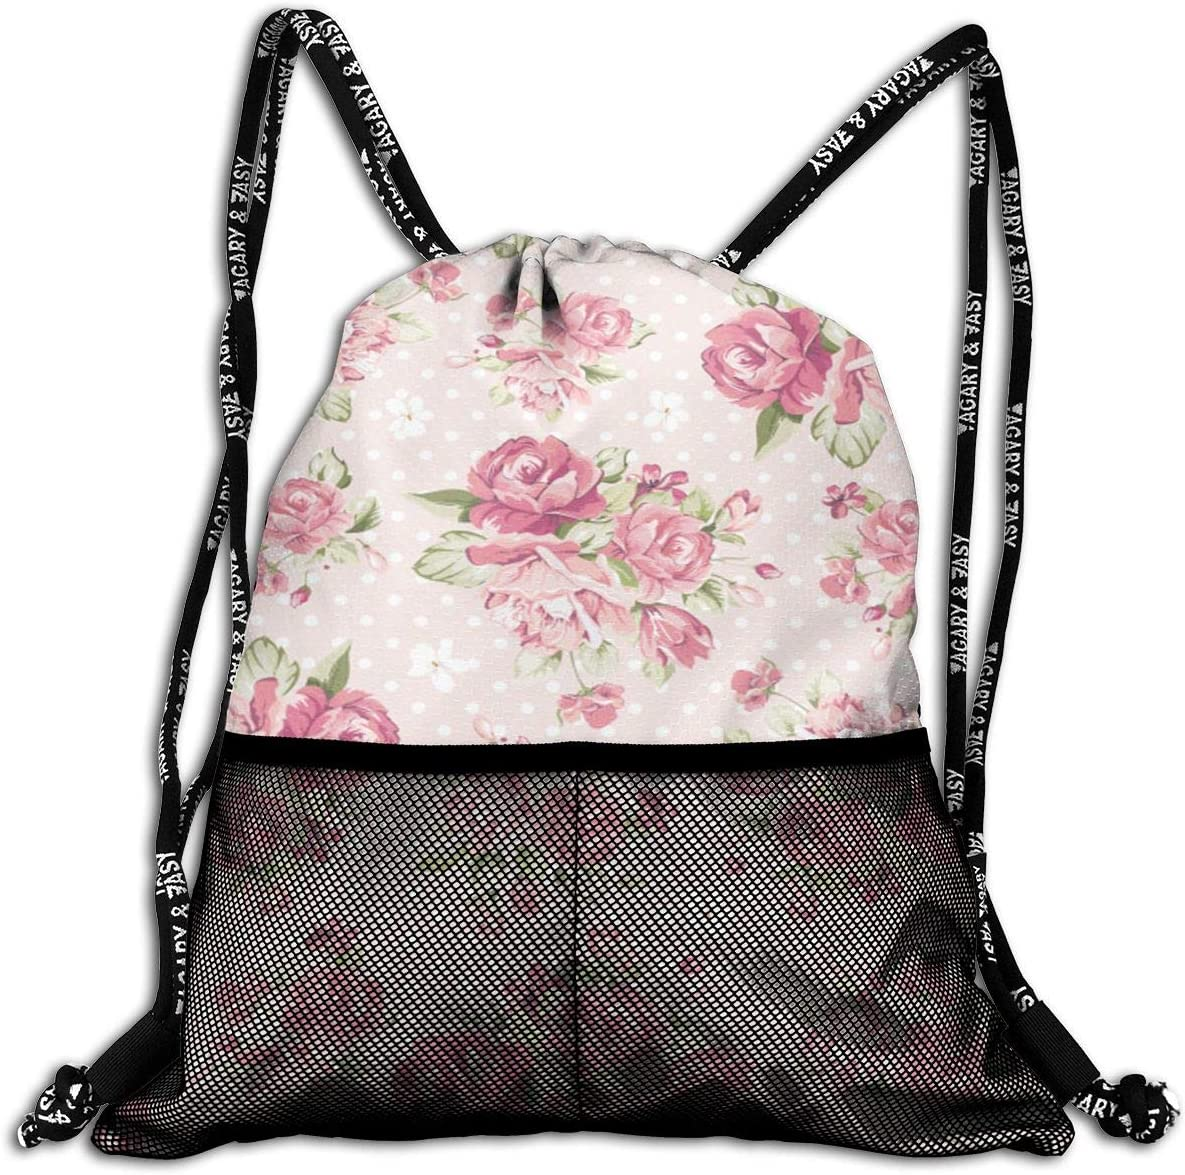 Yackpa Watercolor Floral Leaves Personalized Drawstring Backpack Front Zipper Mesh Bag Unisex For Travel Fitness